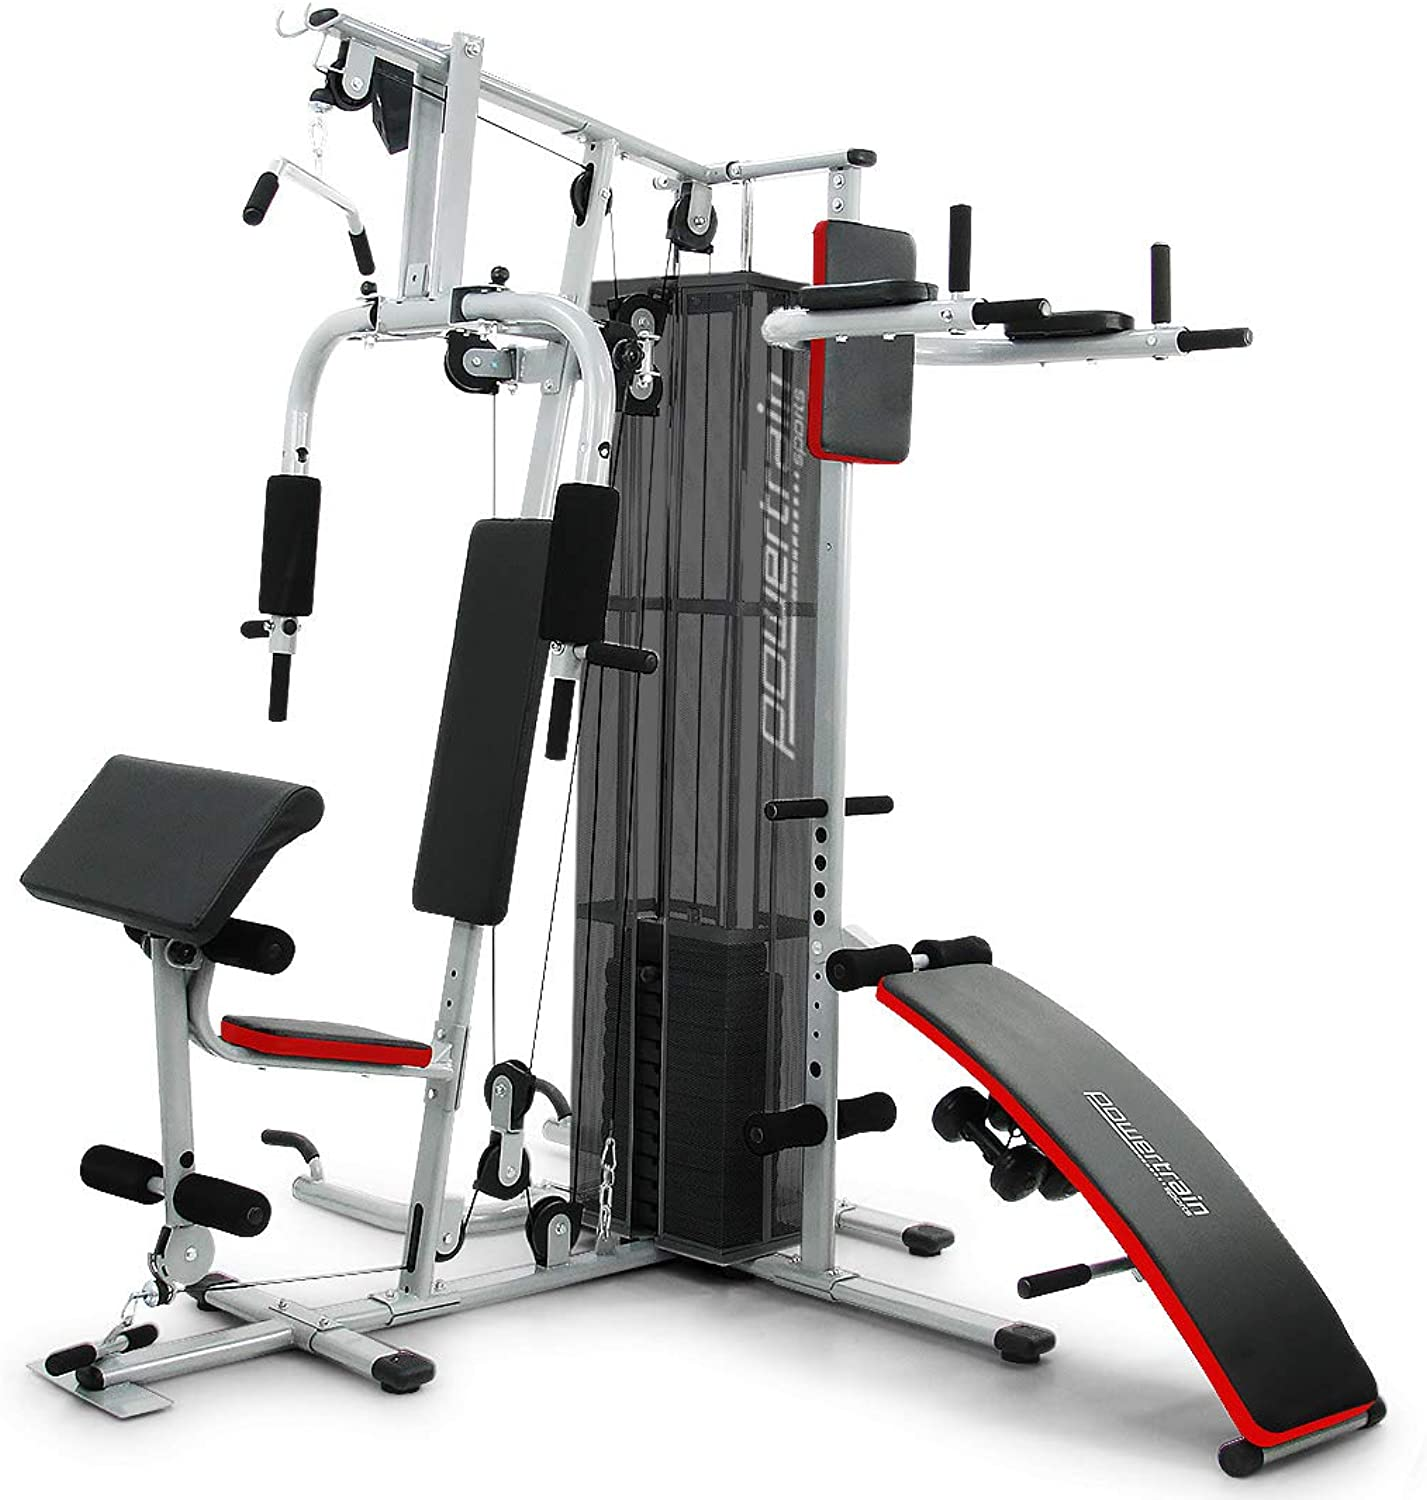 Powertrain MultiStation Home Gym with Weights 175lbs